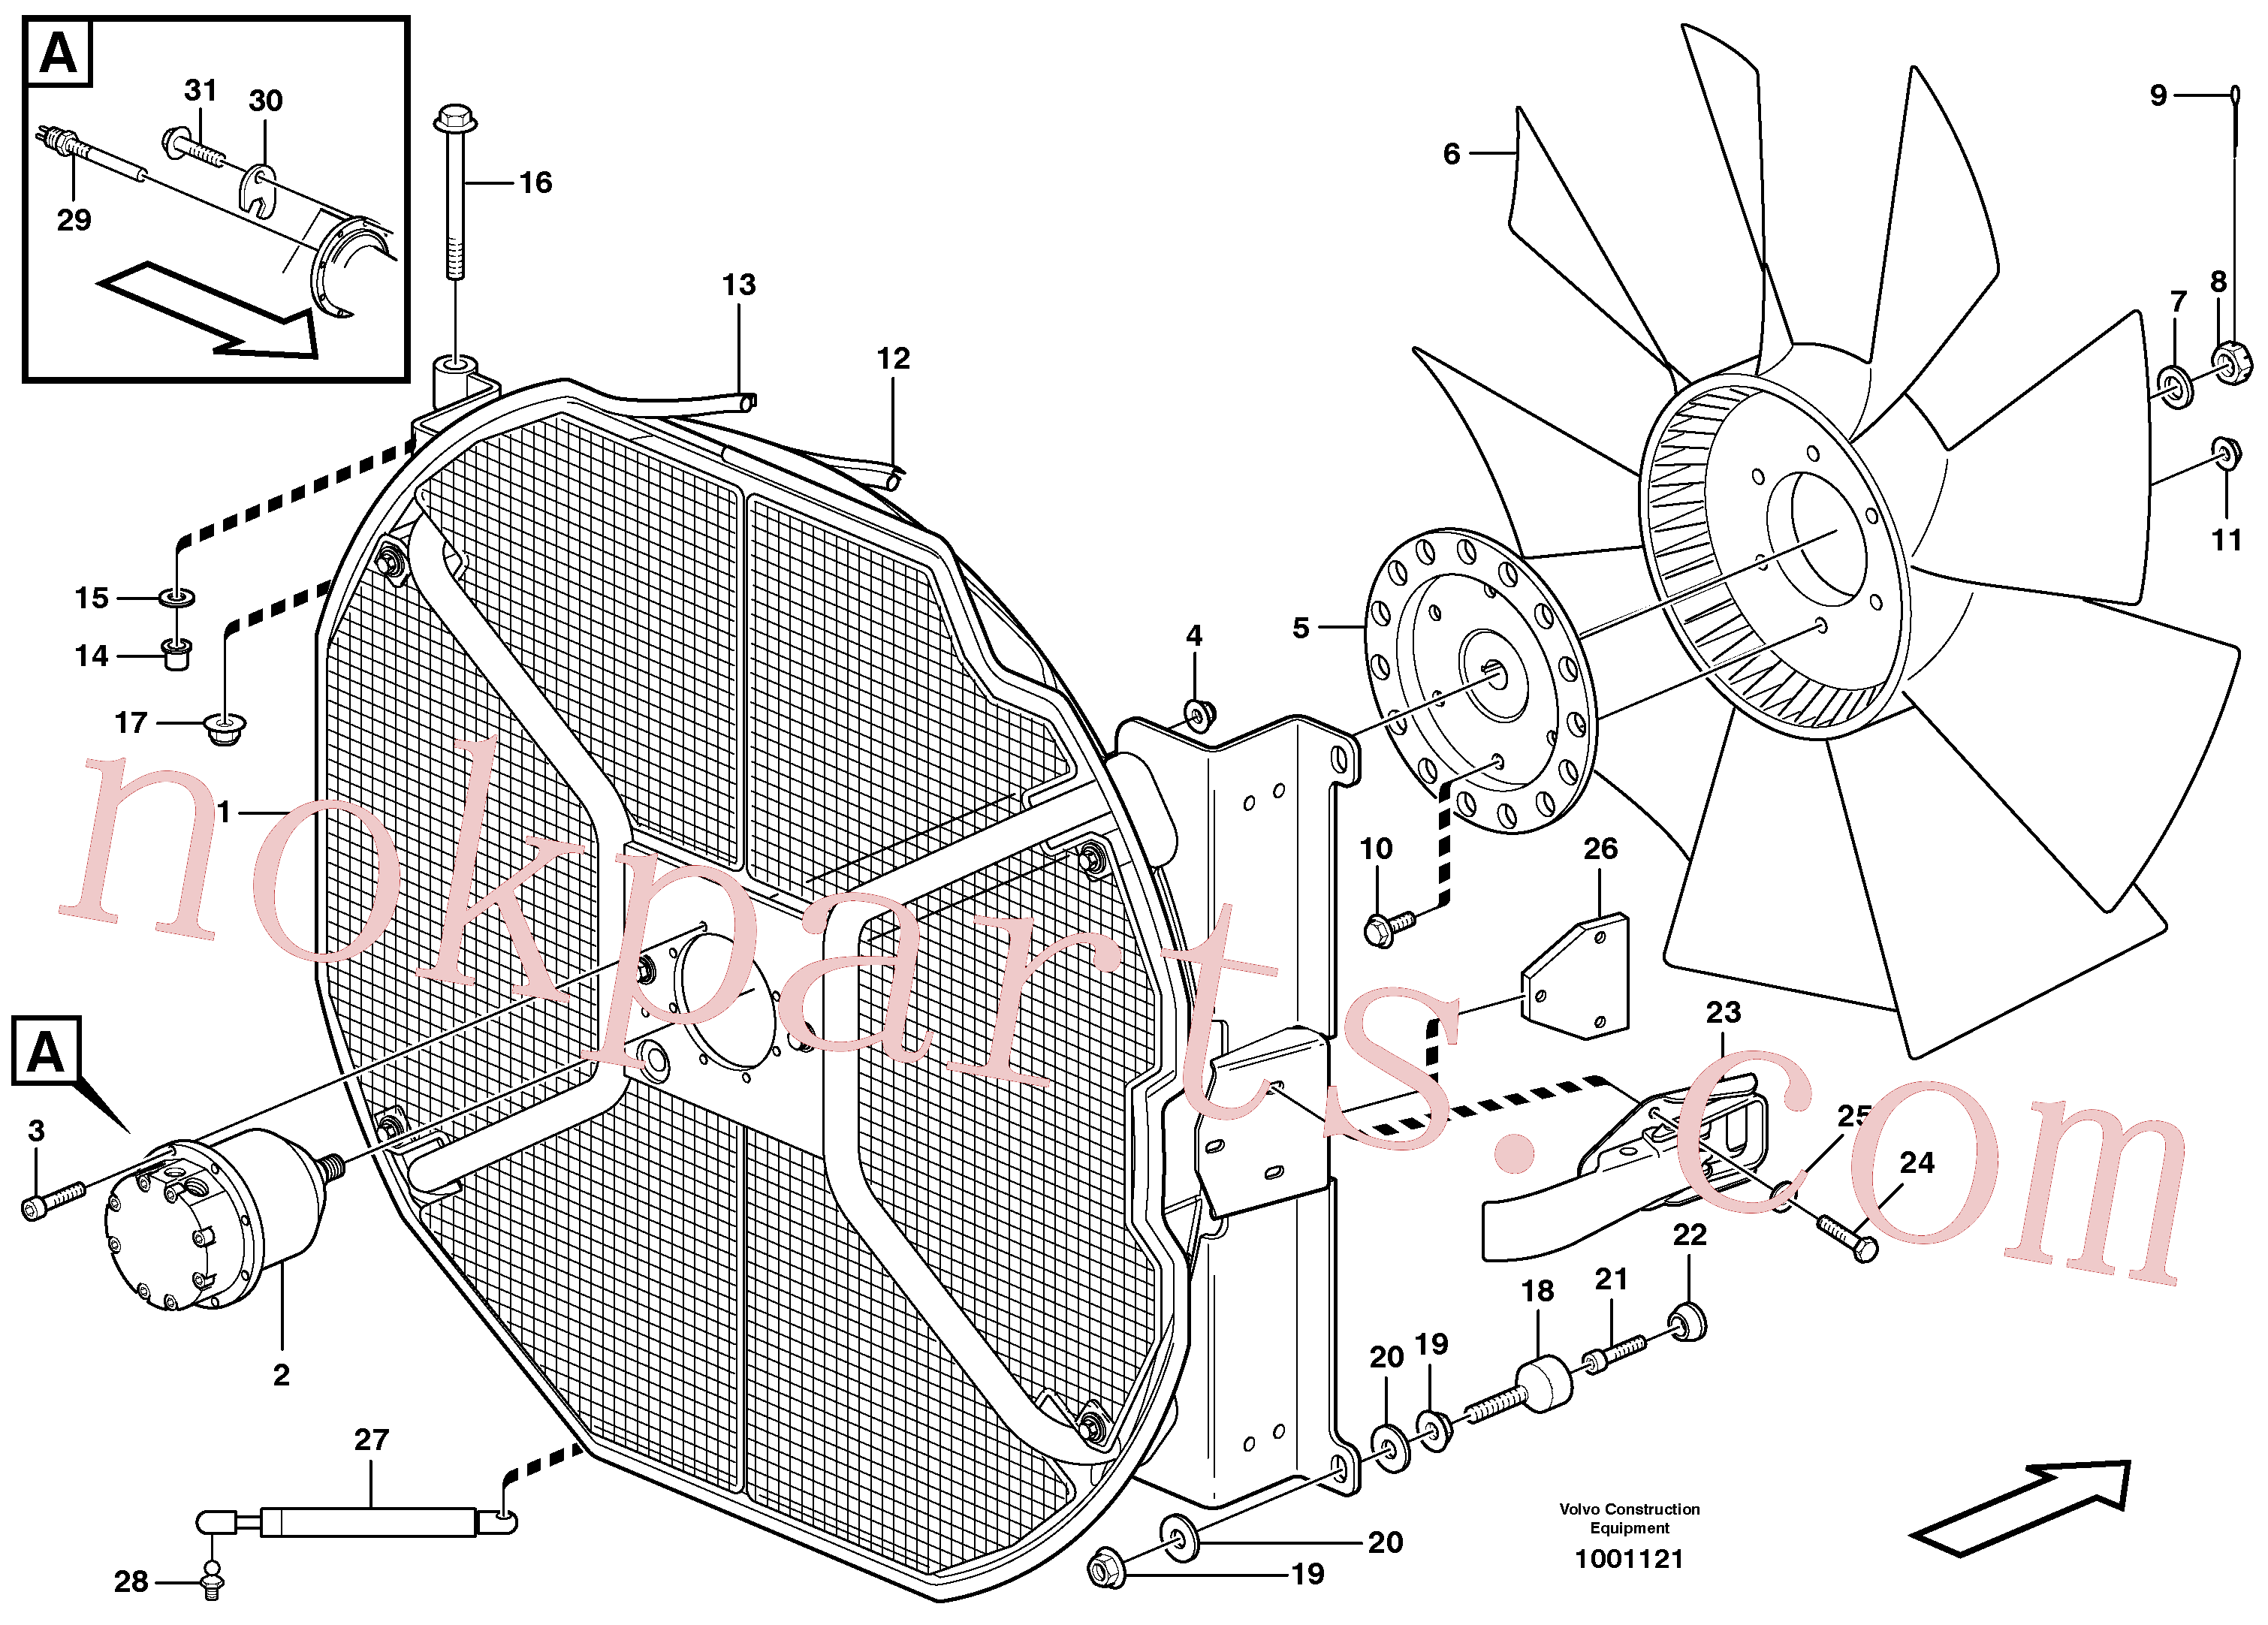 VOE960145 for Volvo Fan and fan housing(1001121 assembly)